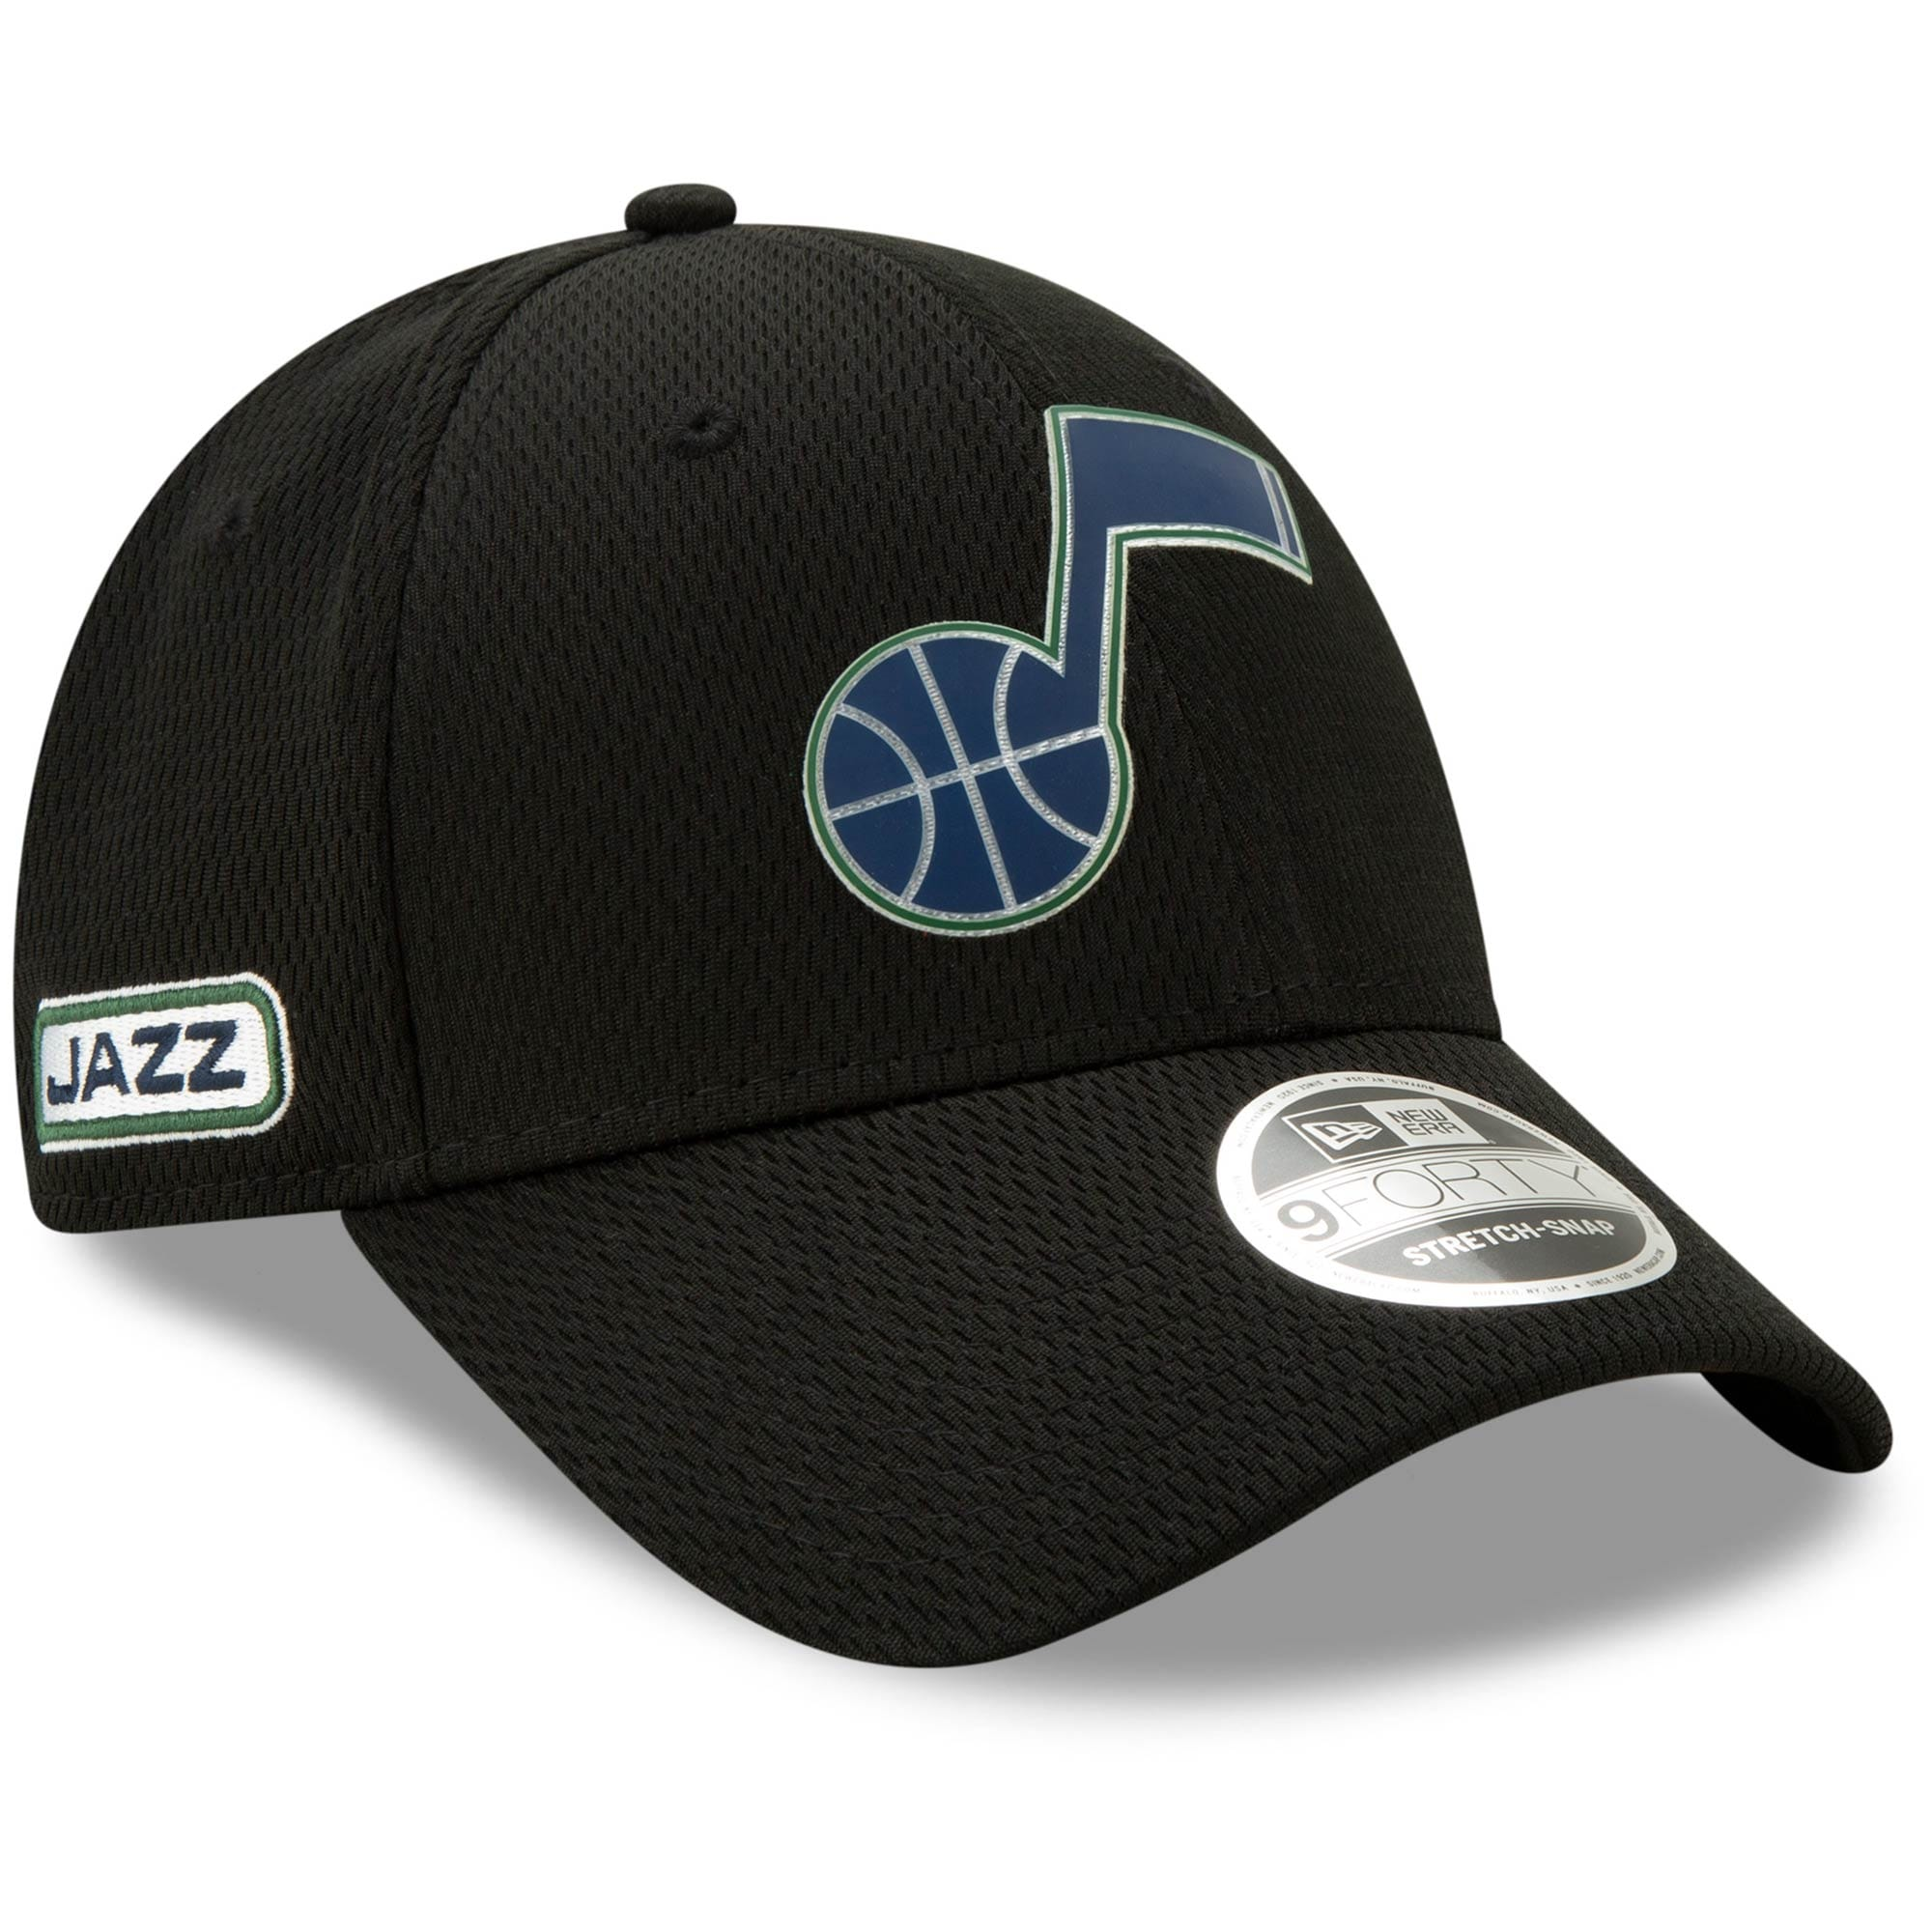 Utah Jazz New Era Official Back Half 9FORTY Adjustable Hat - Black